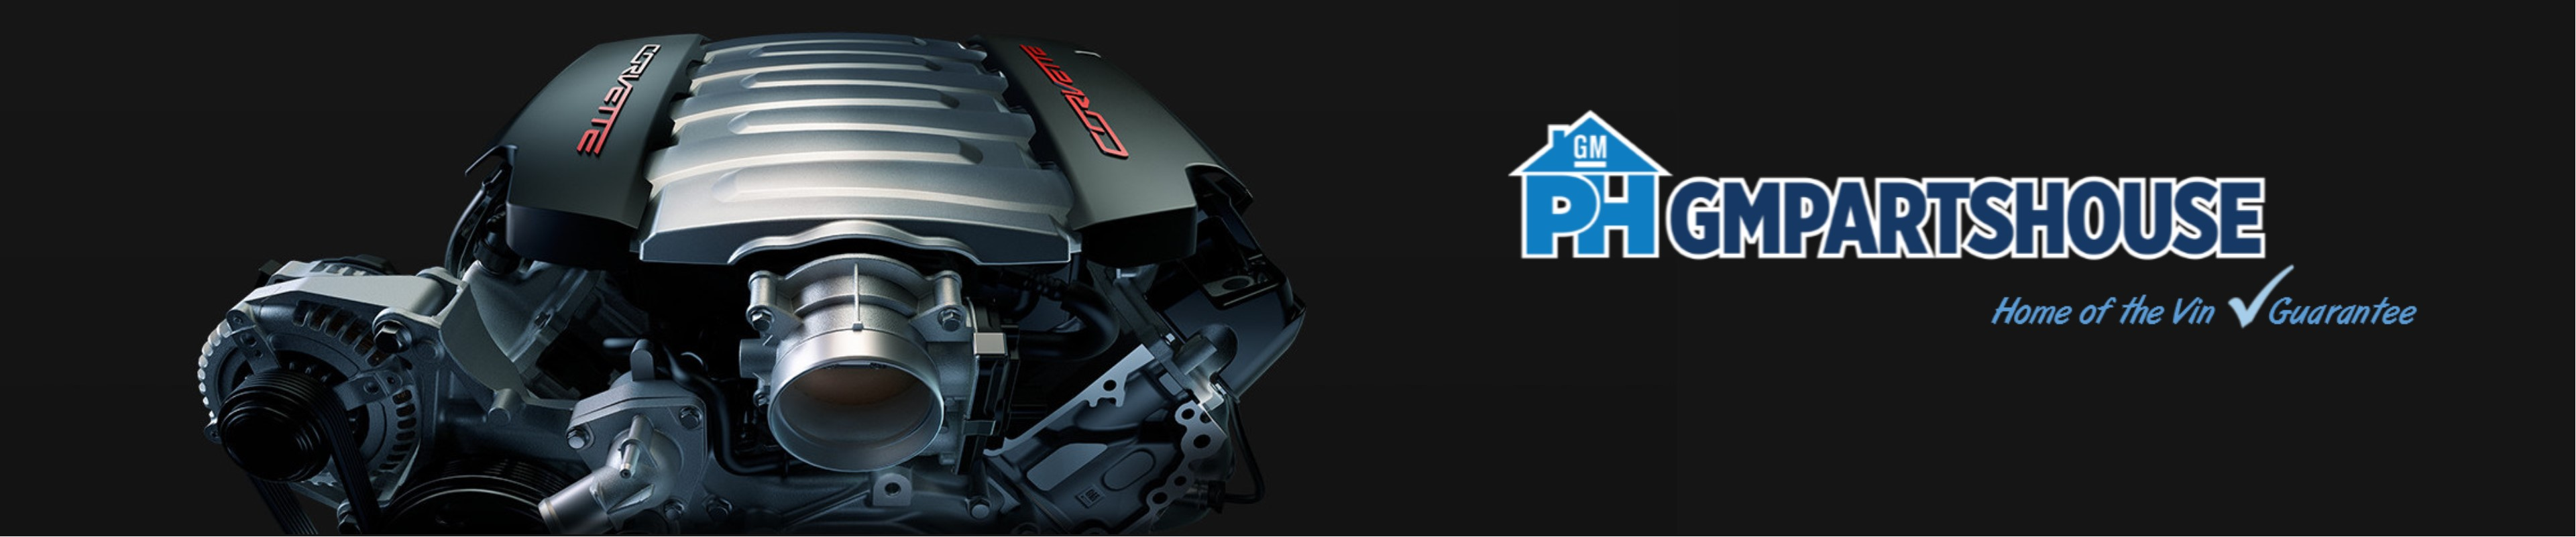 GM Parts House Banner 5